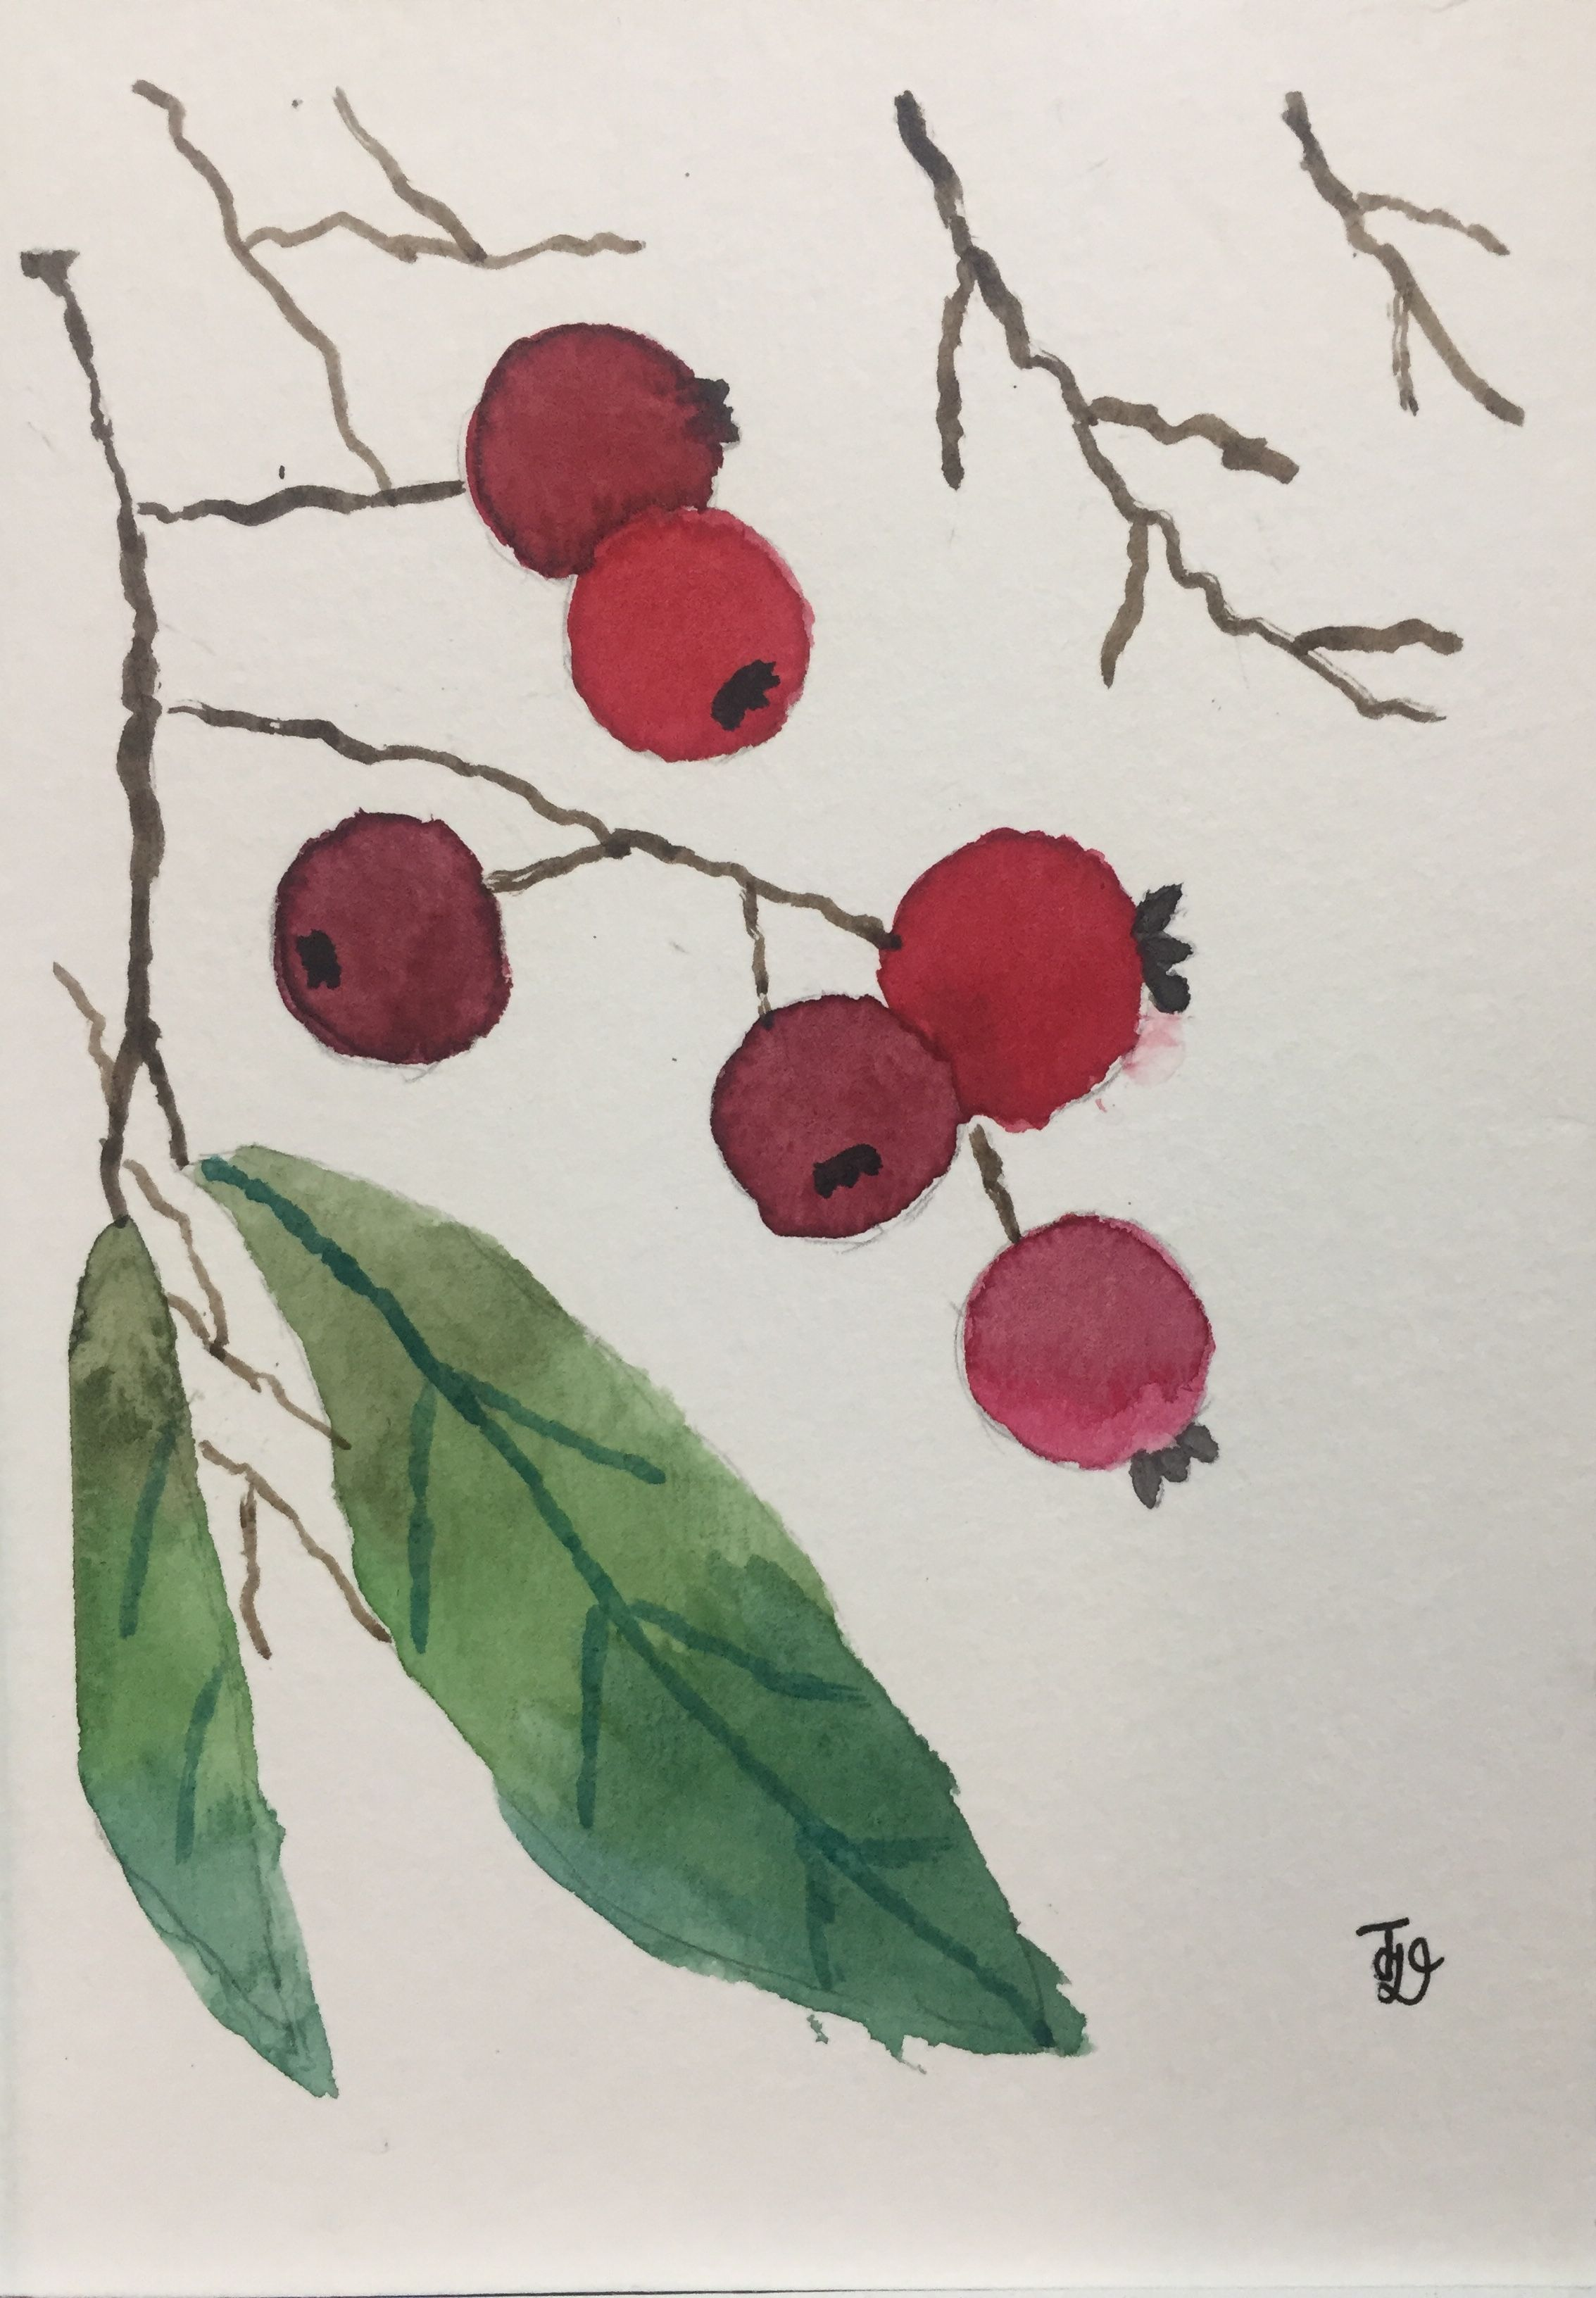 Name: Christmasberries Date: 22 December 2018 Size: 10.5 x 18 cm Painting media: Watercolour